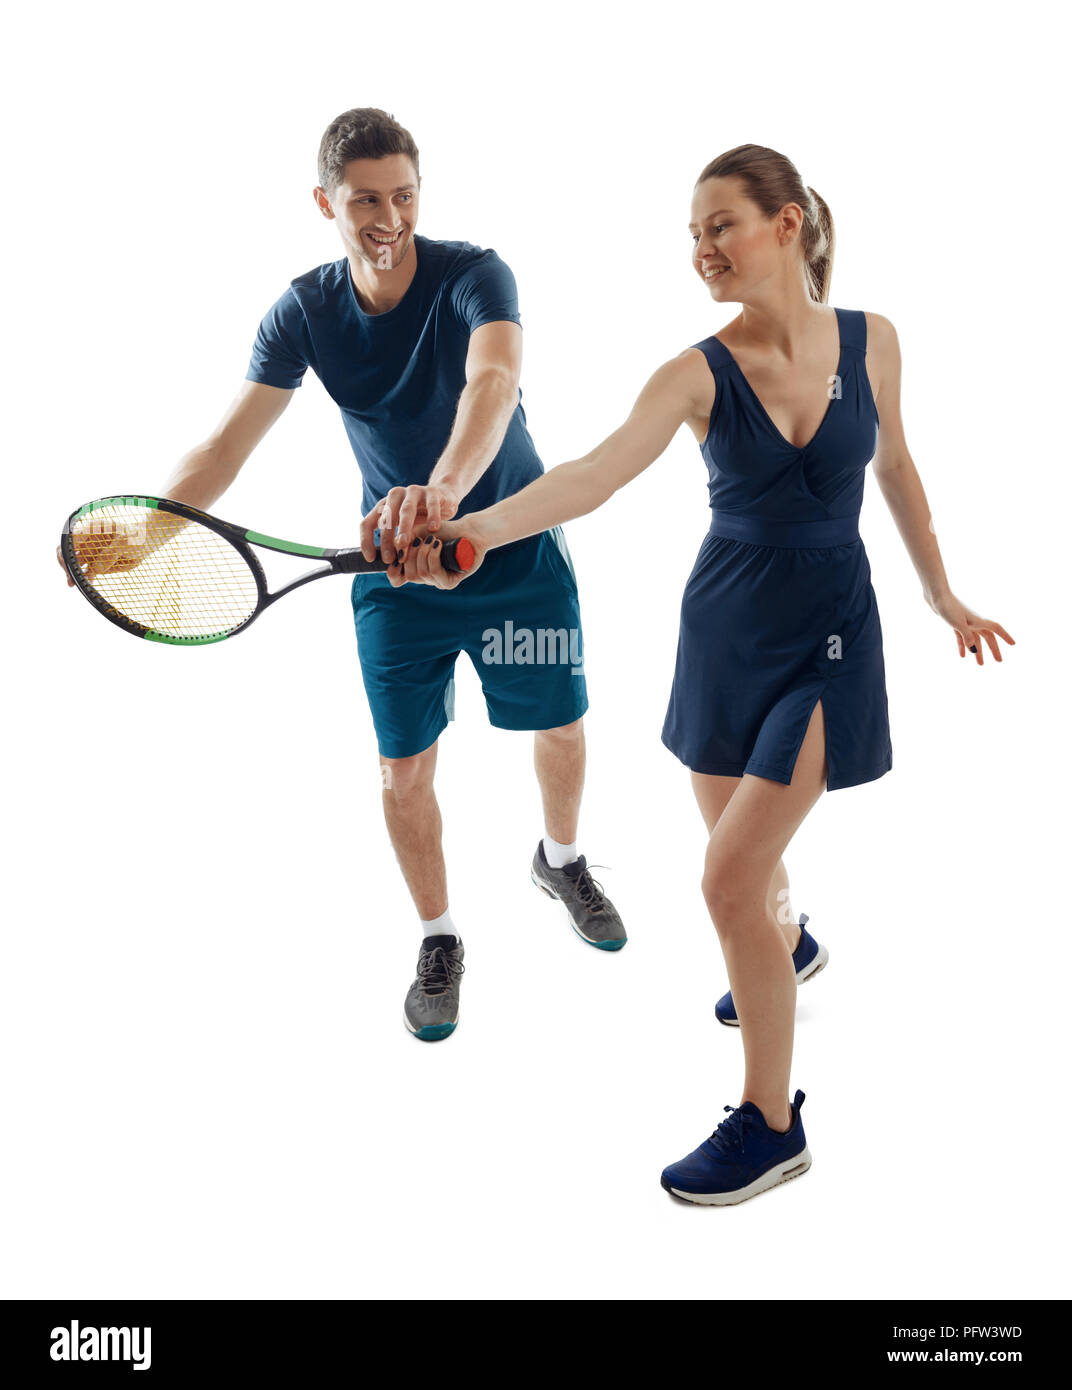 Young woman learning tennis fundamentals with handsome coach. Exploring new and having fun. Sport and leisure. - Stock Image